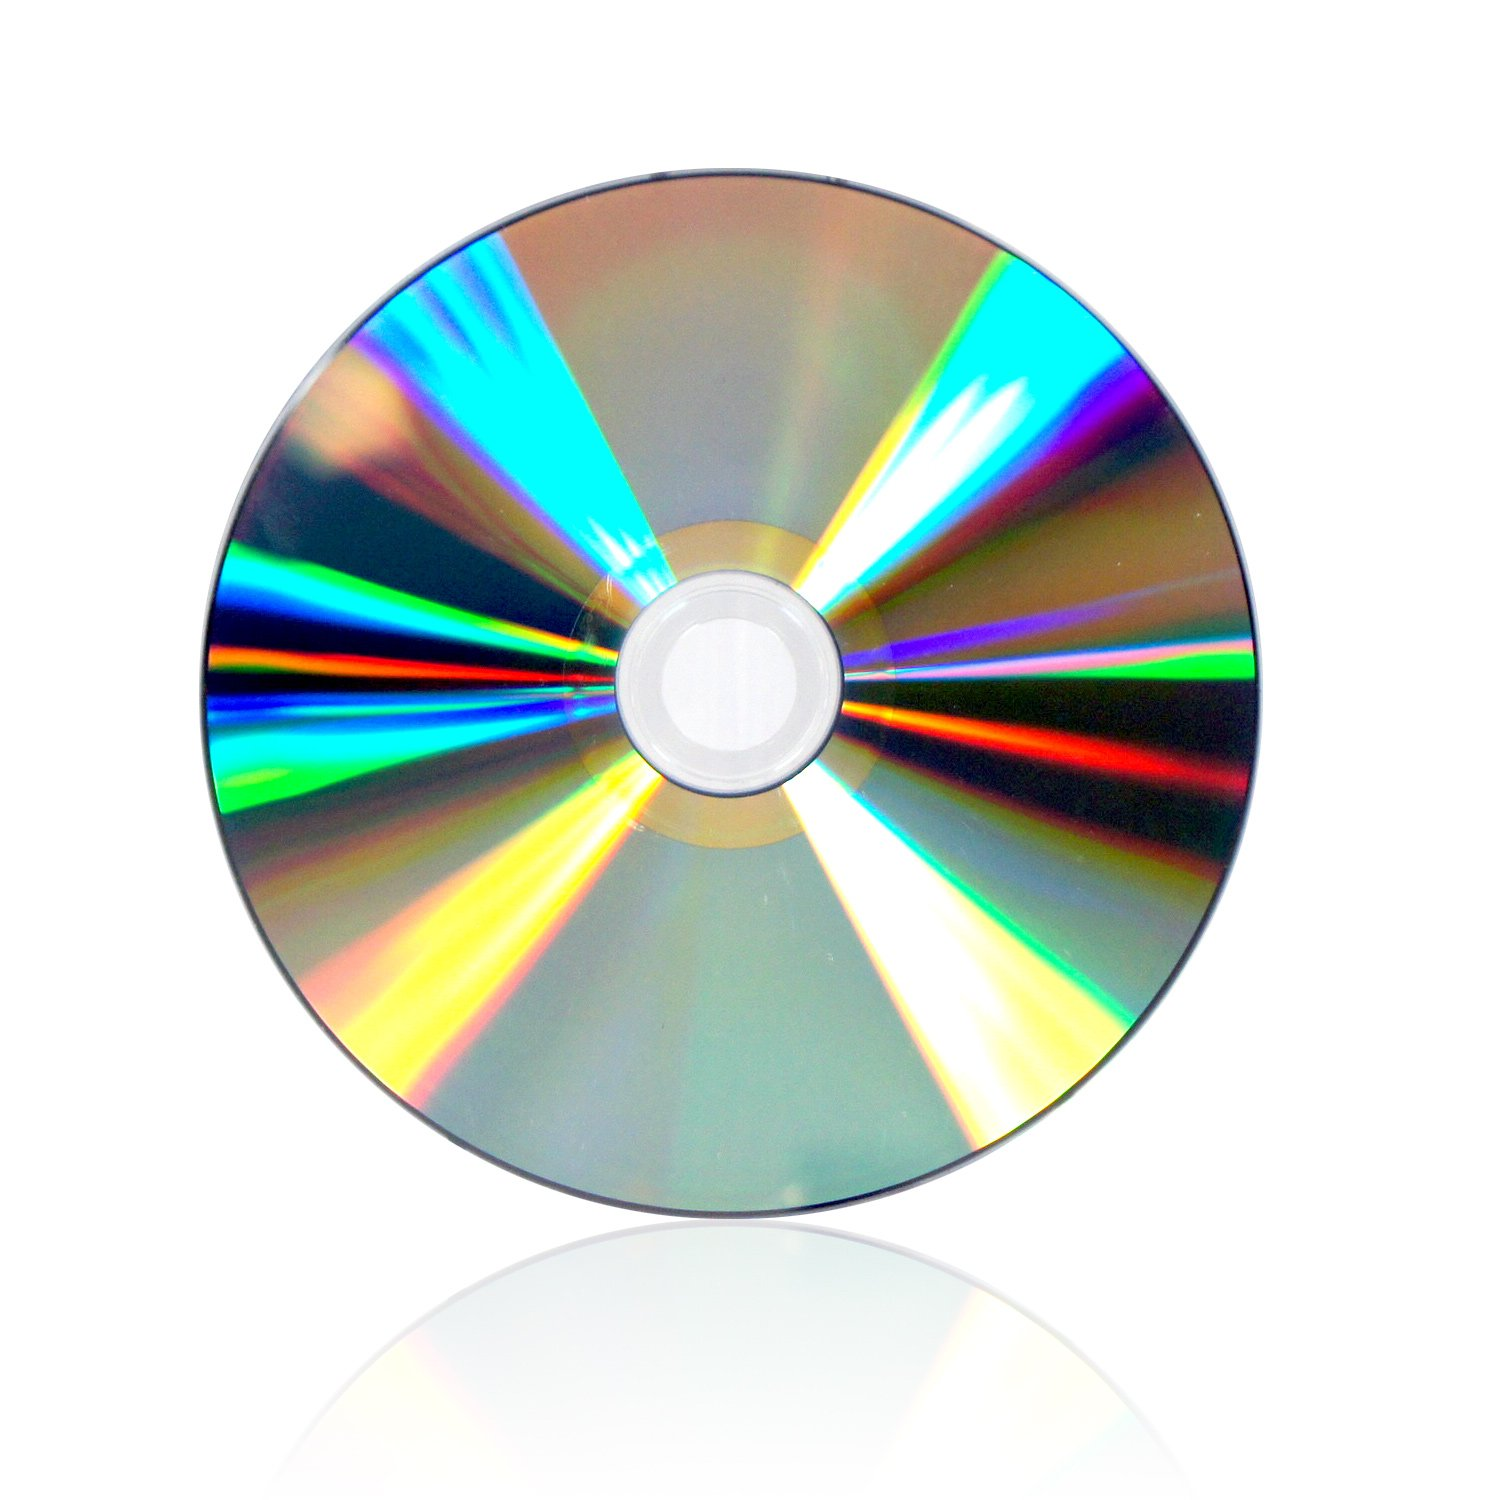 Smart Buy 500 Pack DVD-r 4.7gb 16x Shiny Silver Blank Data Video Movie Recordable Media Disc, 500 Disc 500pk by Smart Buy (Image #2)